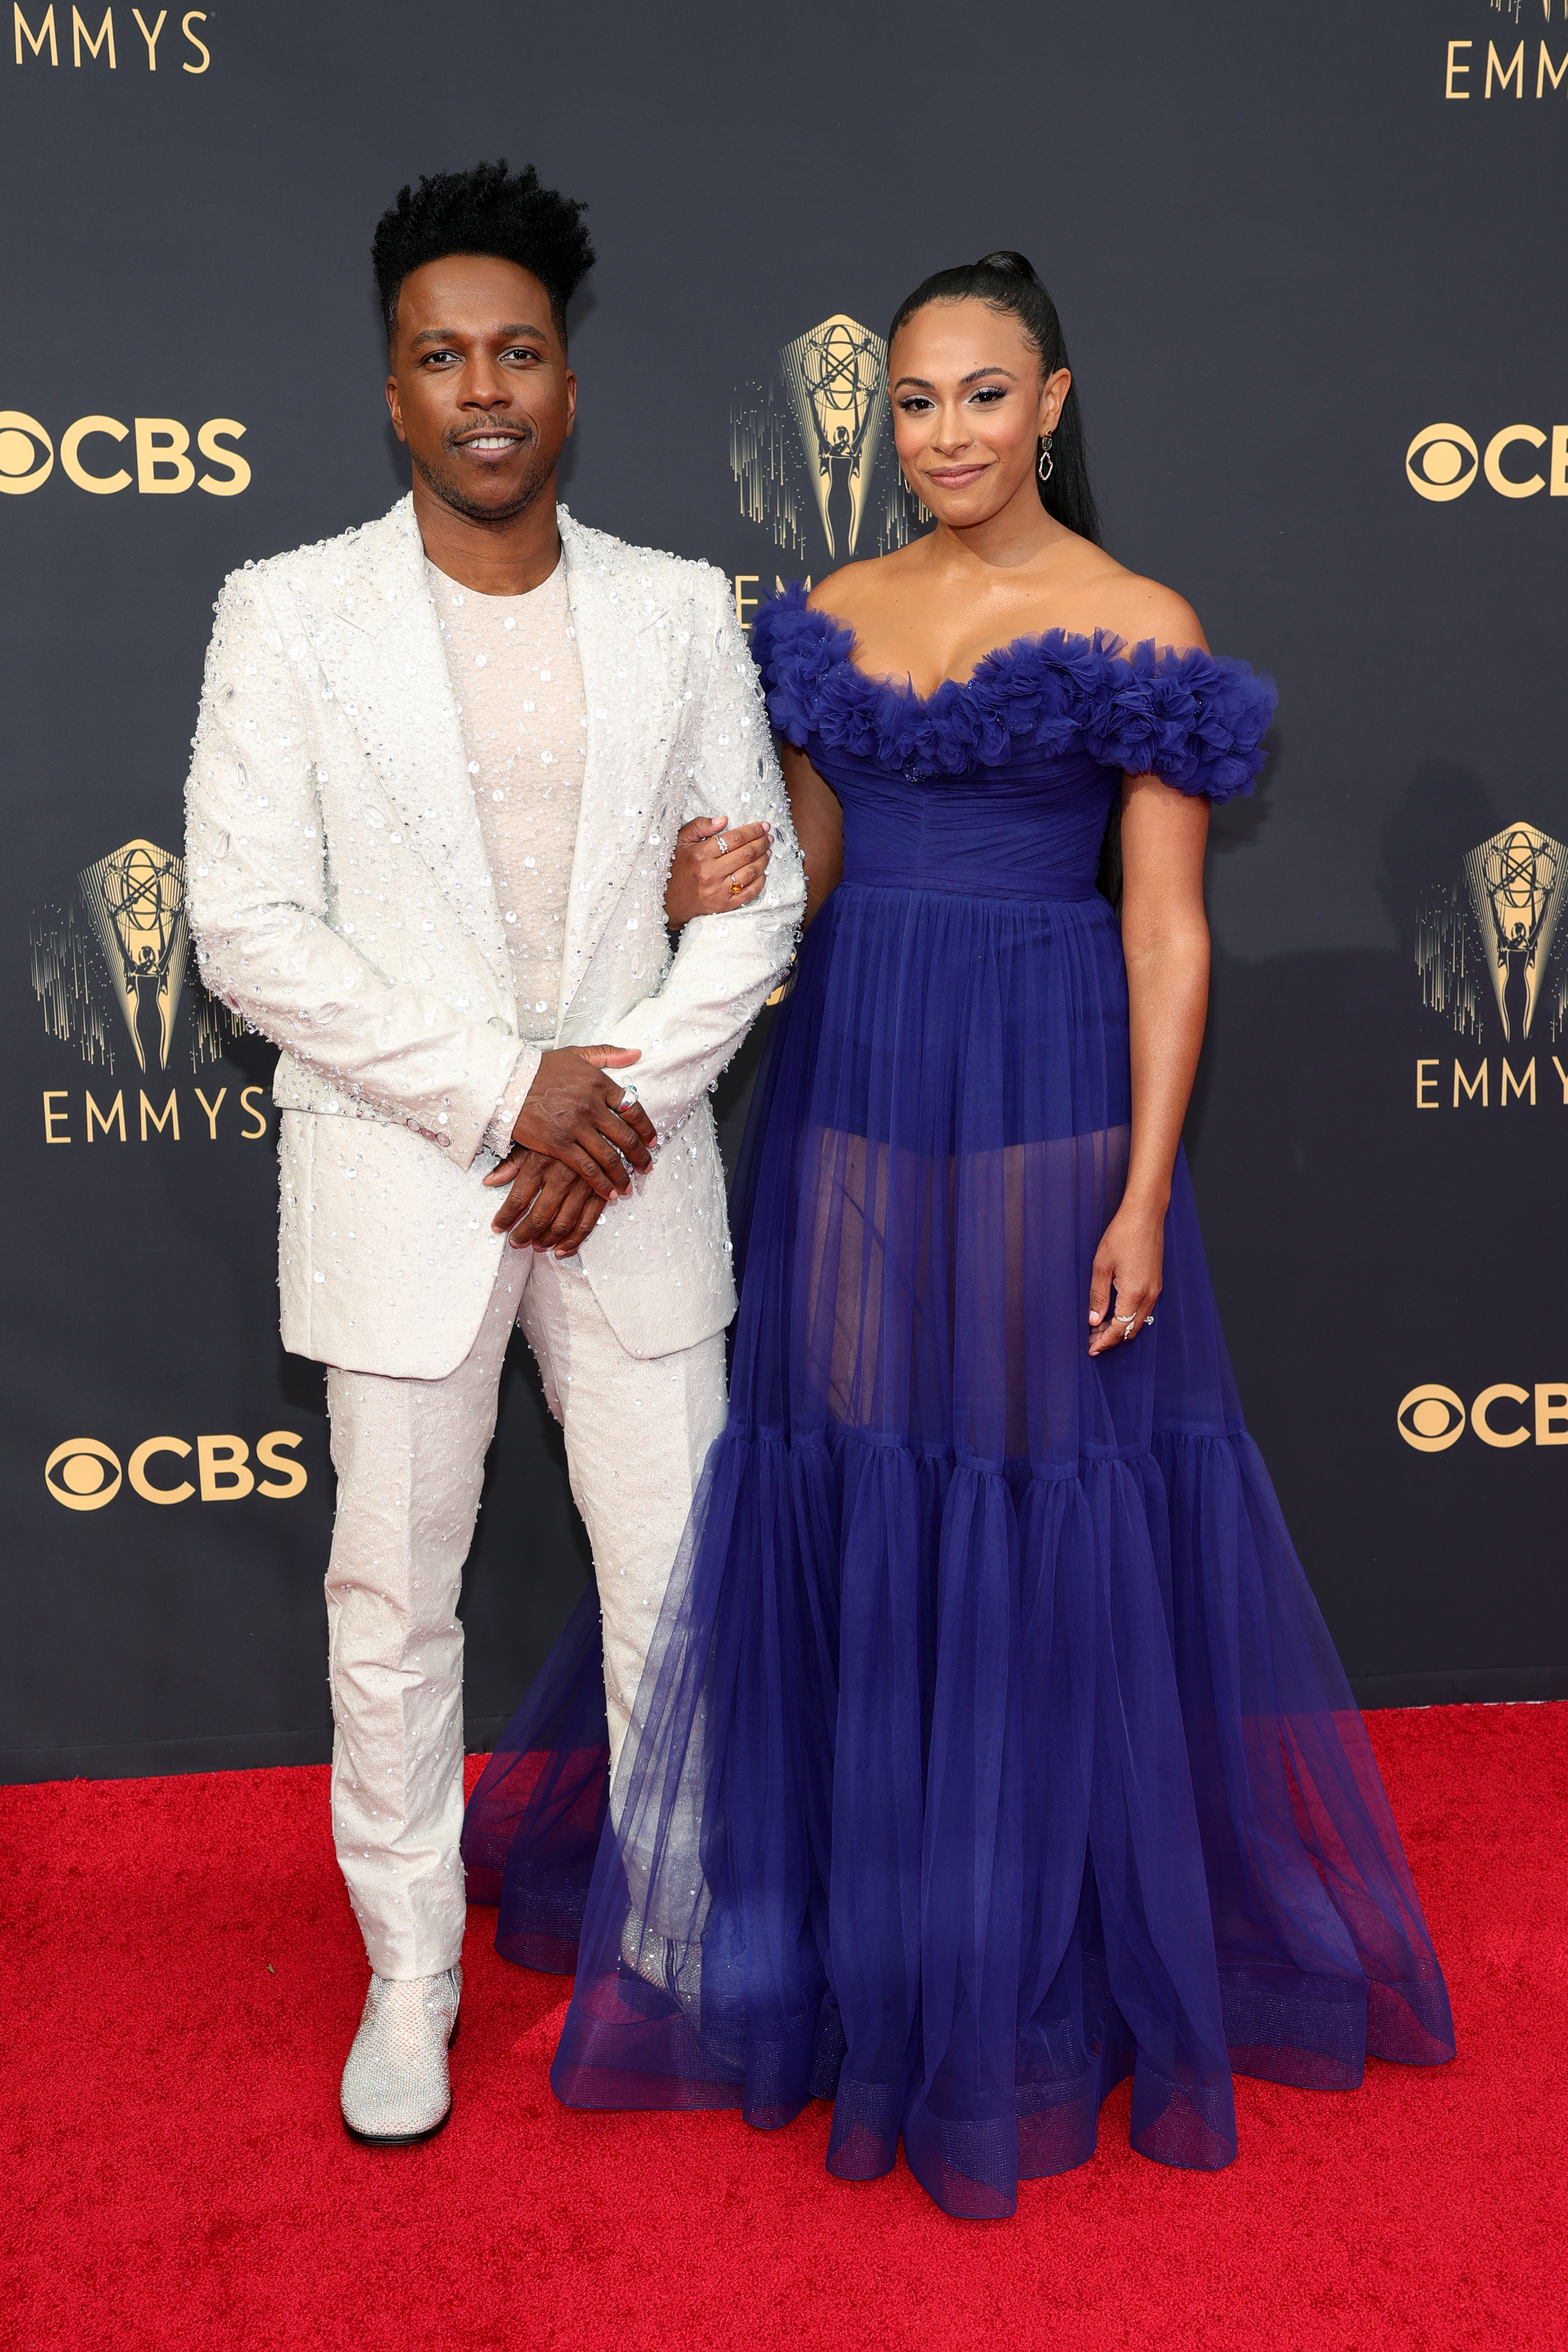 LOS ANGELES, CALIFORNIA - SEPTEMBER 19: (L-R) Leslie Odom Jr. and Nicolette Robinson attend the 73rd Primetime Emmy Awards at L.A. LIVE on September 19, 2021 in Los Angeles, California. (Photo by Rich Fury/Getty Images)